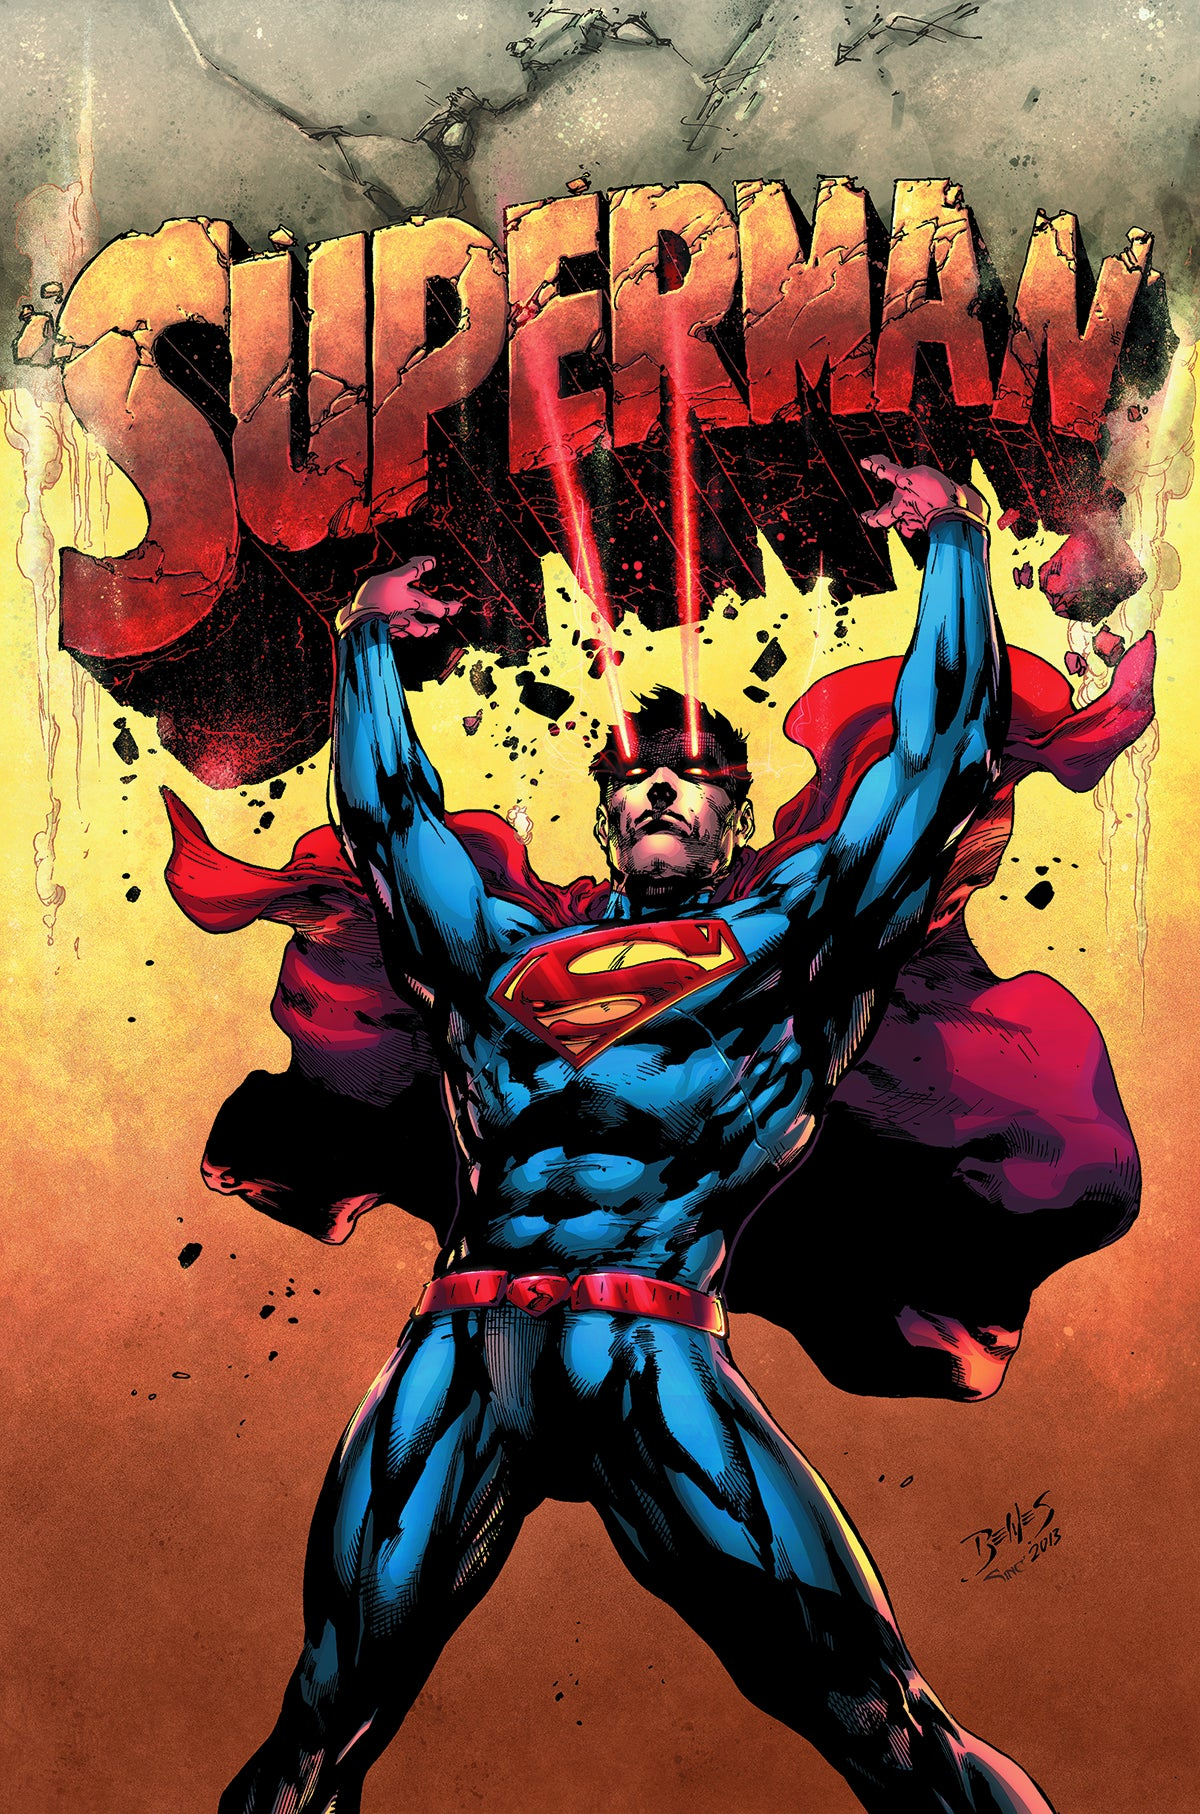 SUPERMAN HC VOL 05 UNDER FIRE (N52) | Game Master's Emporium (The New GME)